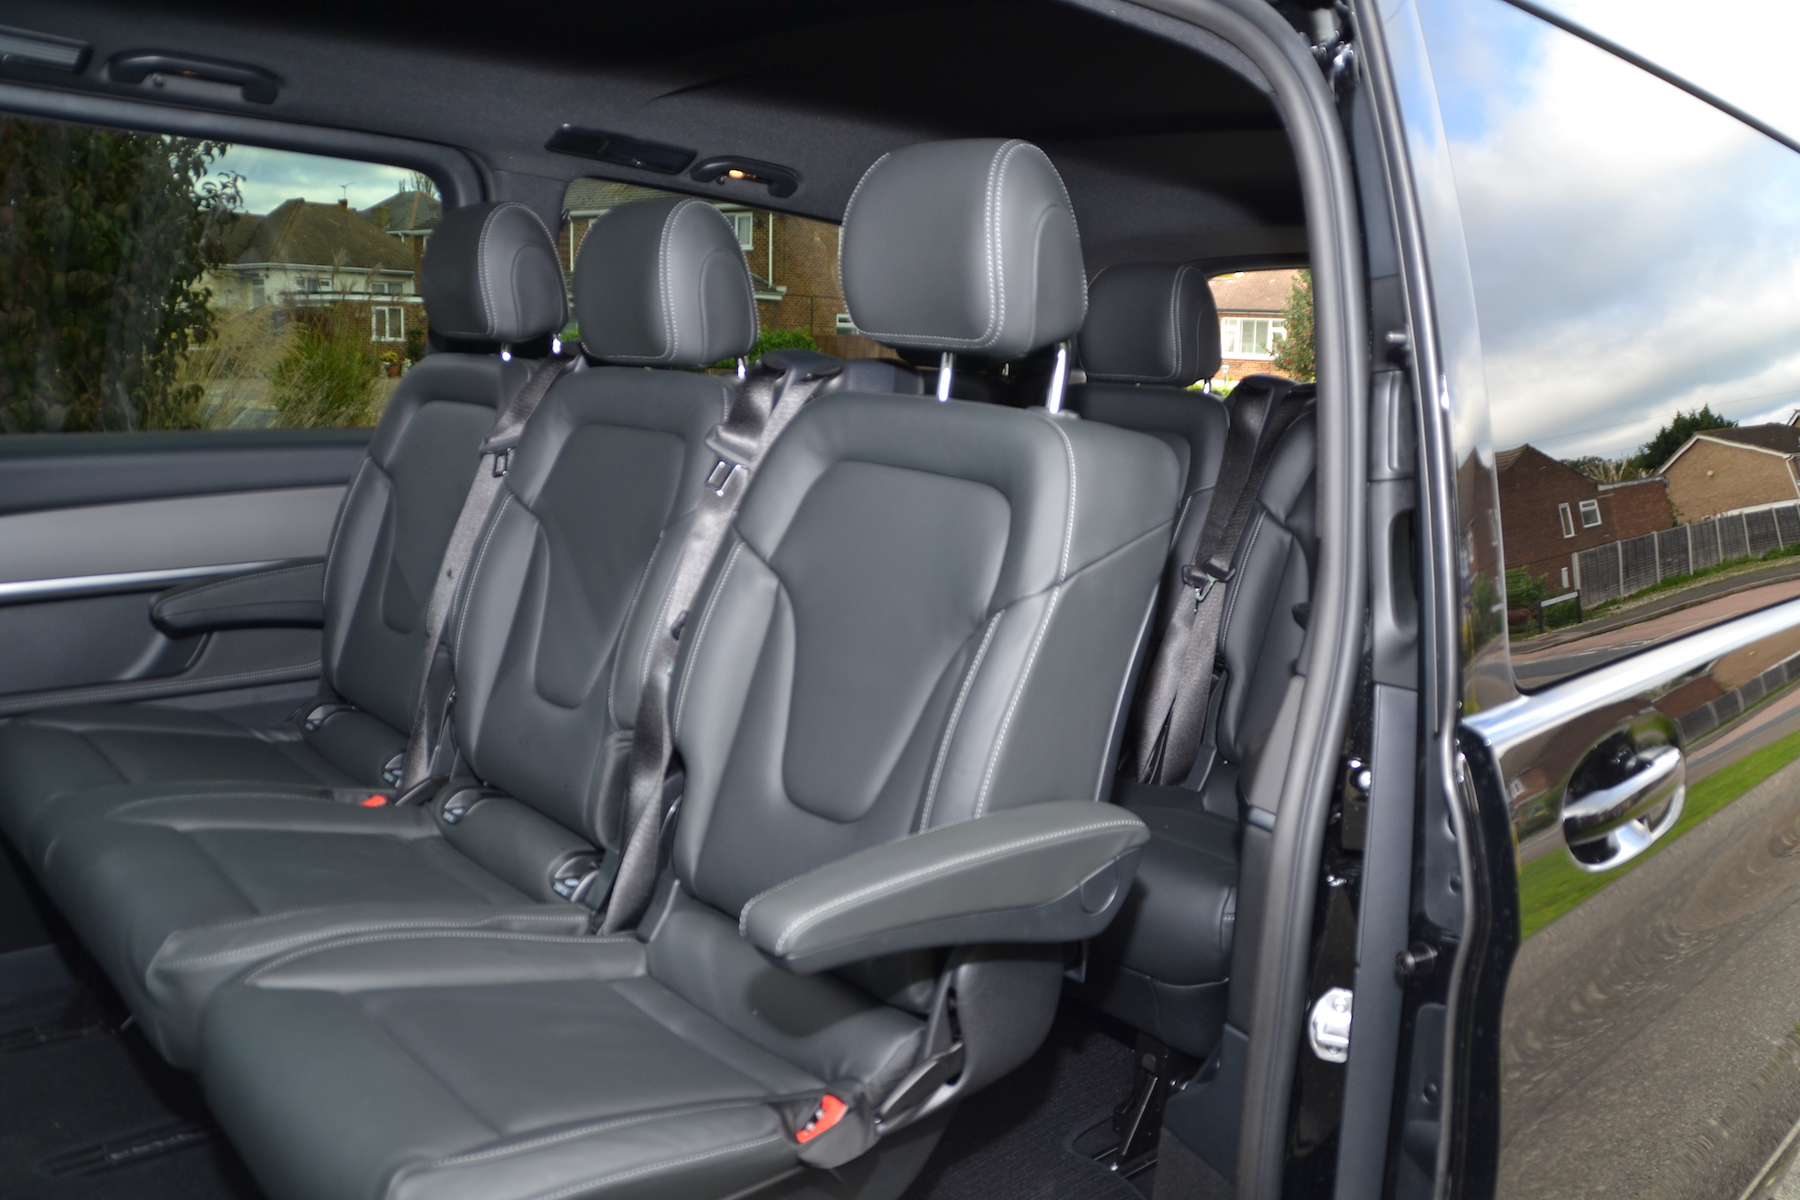 Seven Leather Upholstered Seats and masses of luggage space